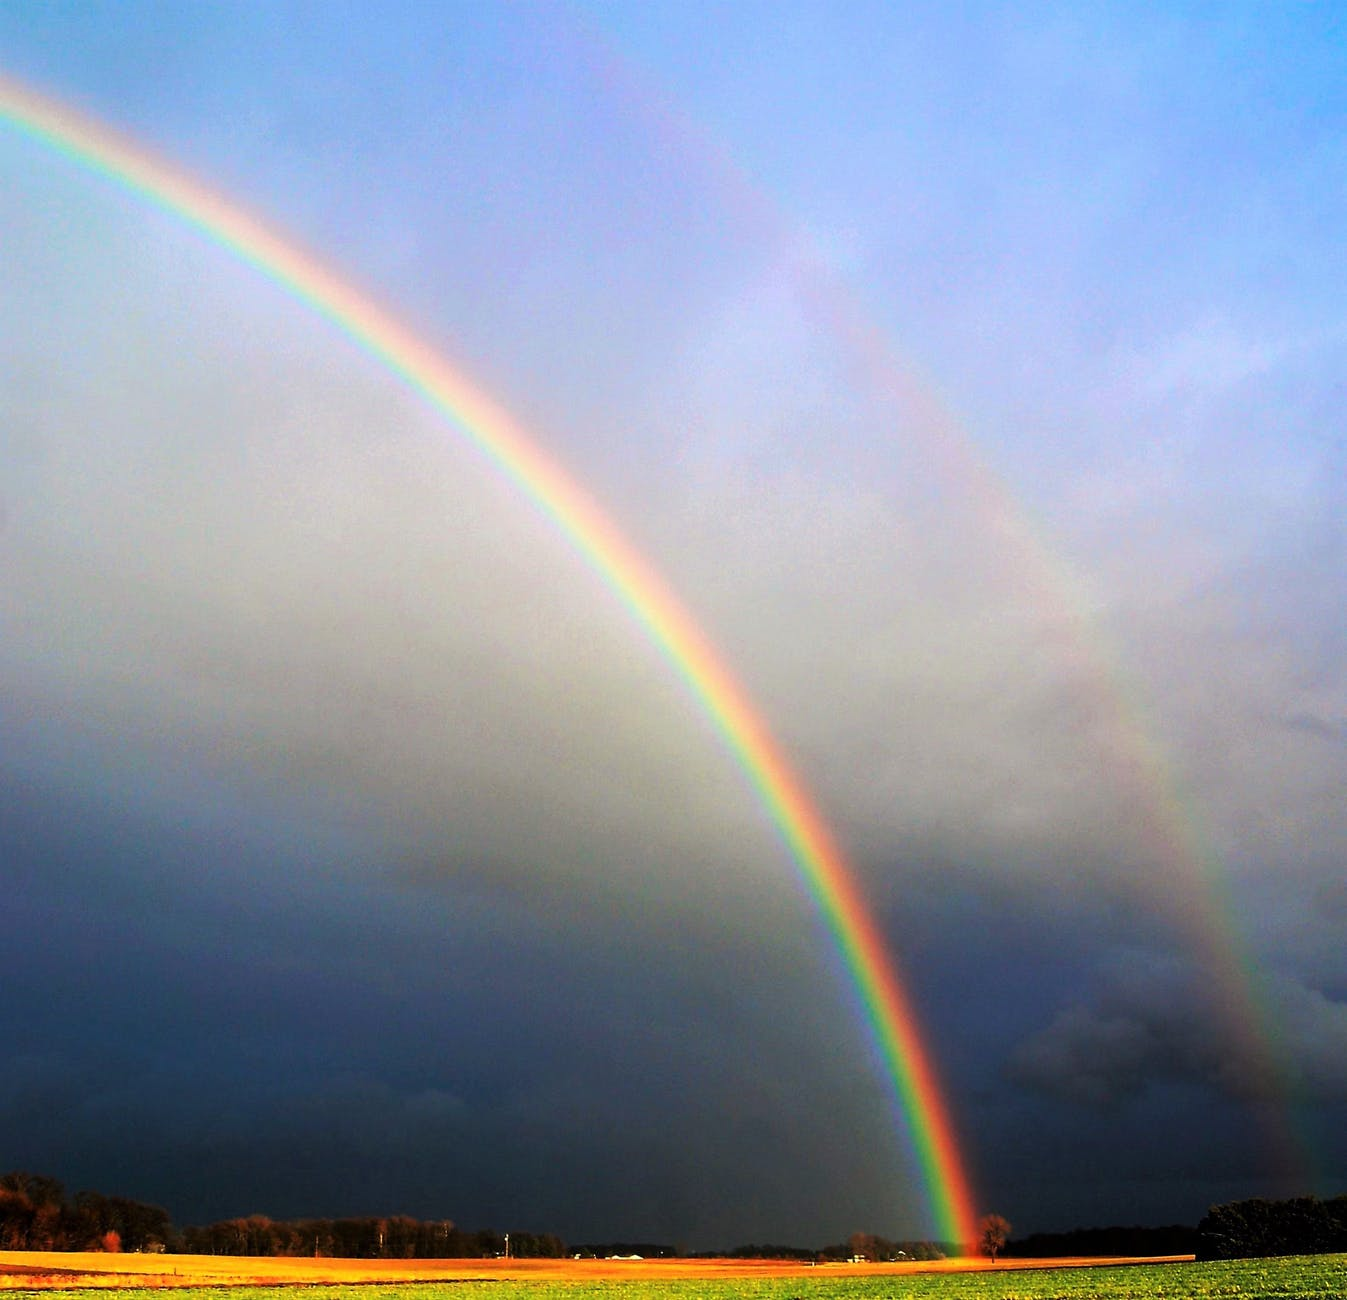 photography of rainbow during cloudy sky